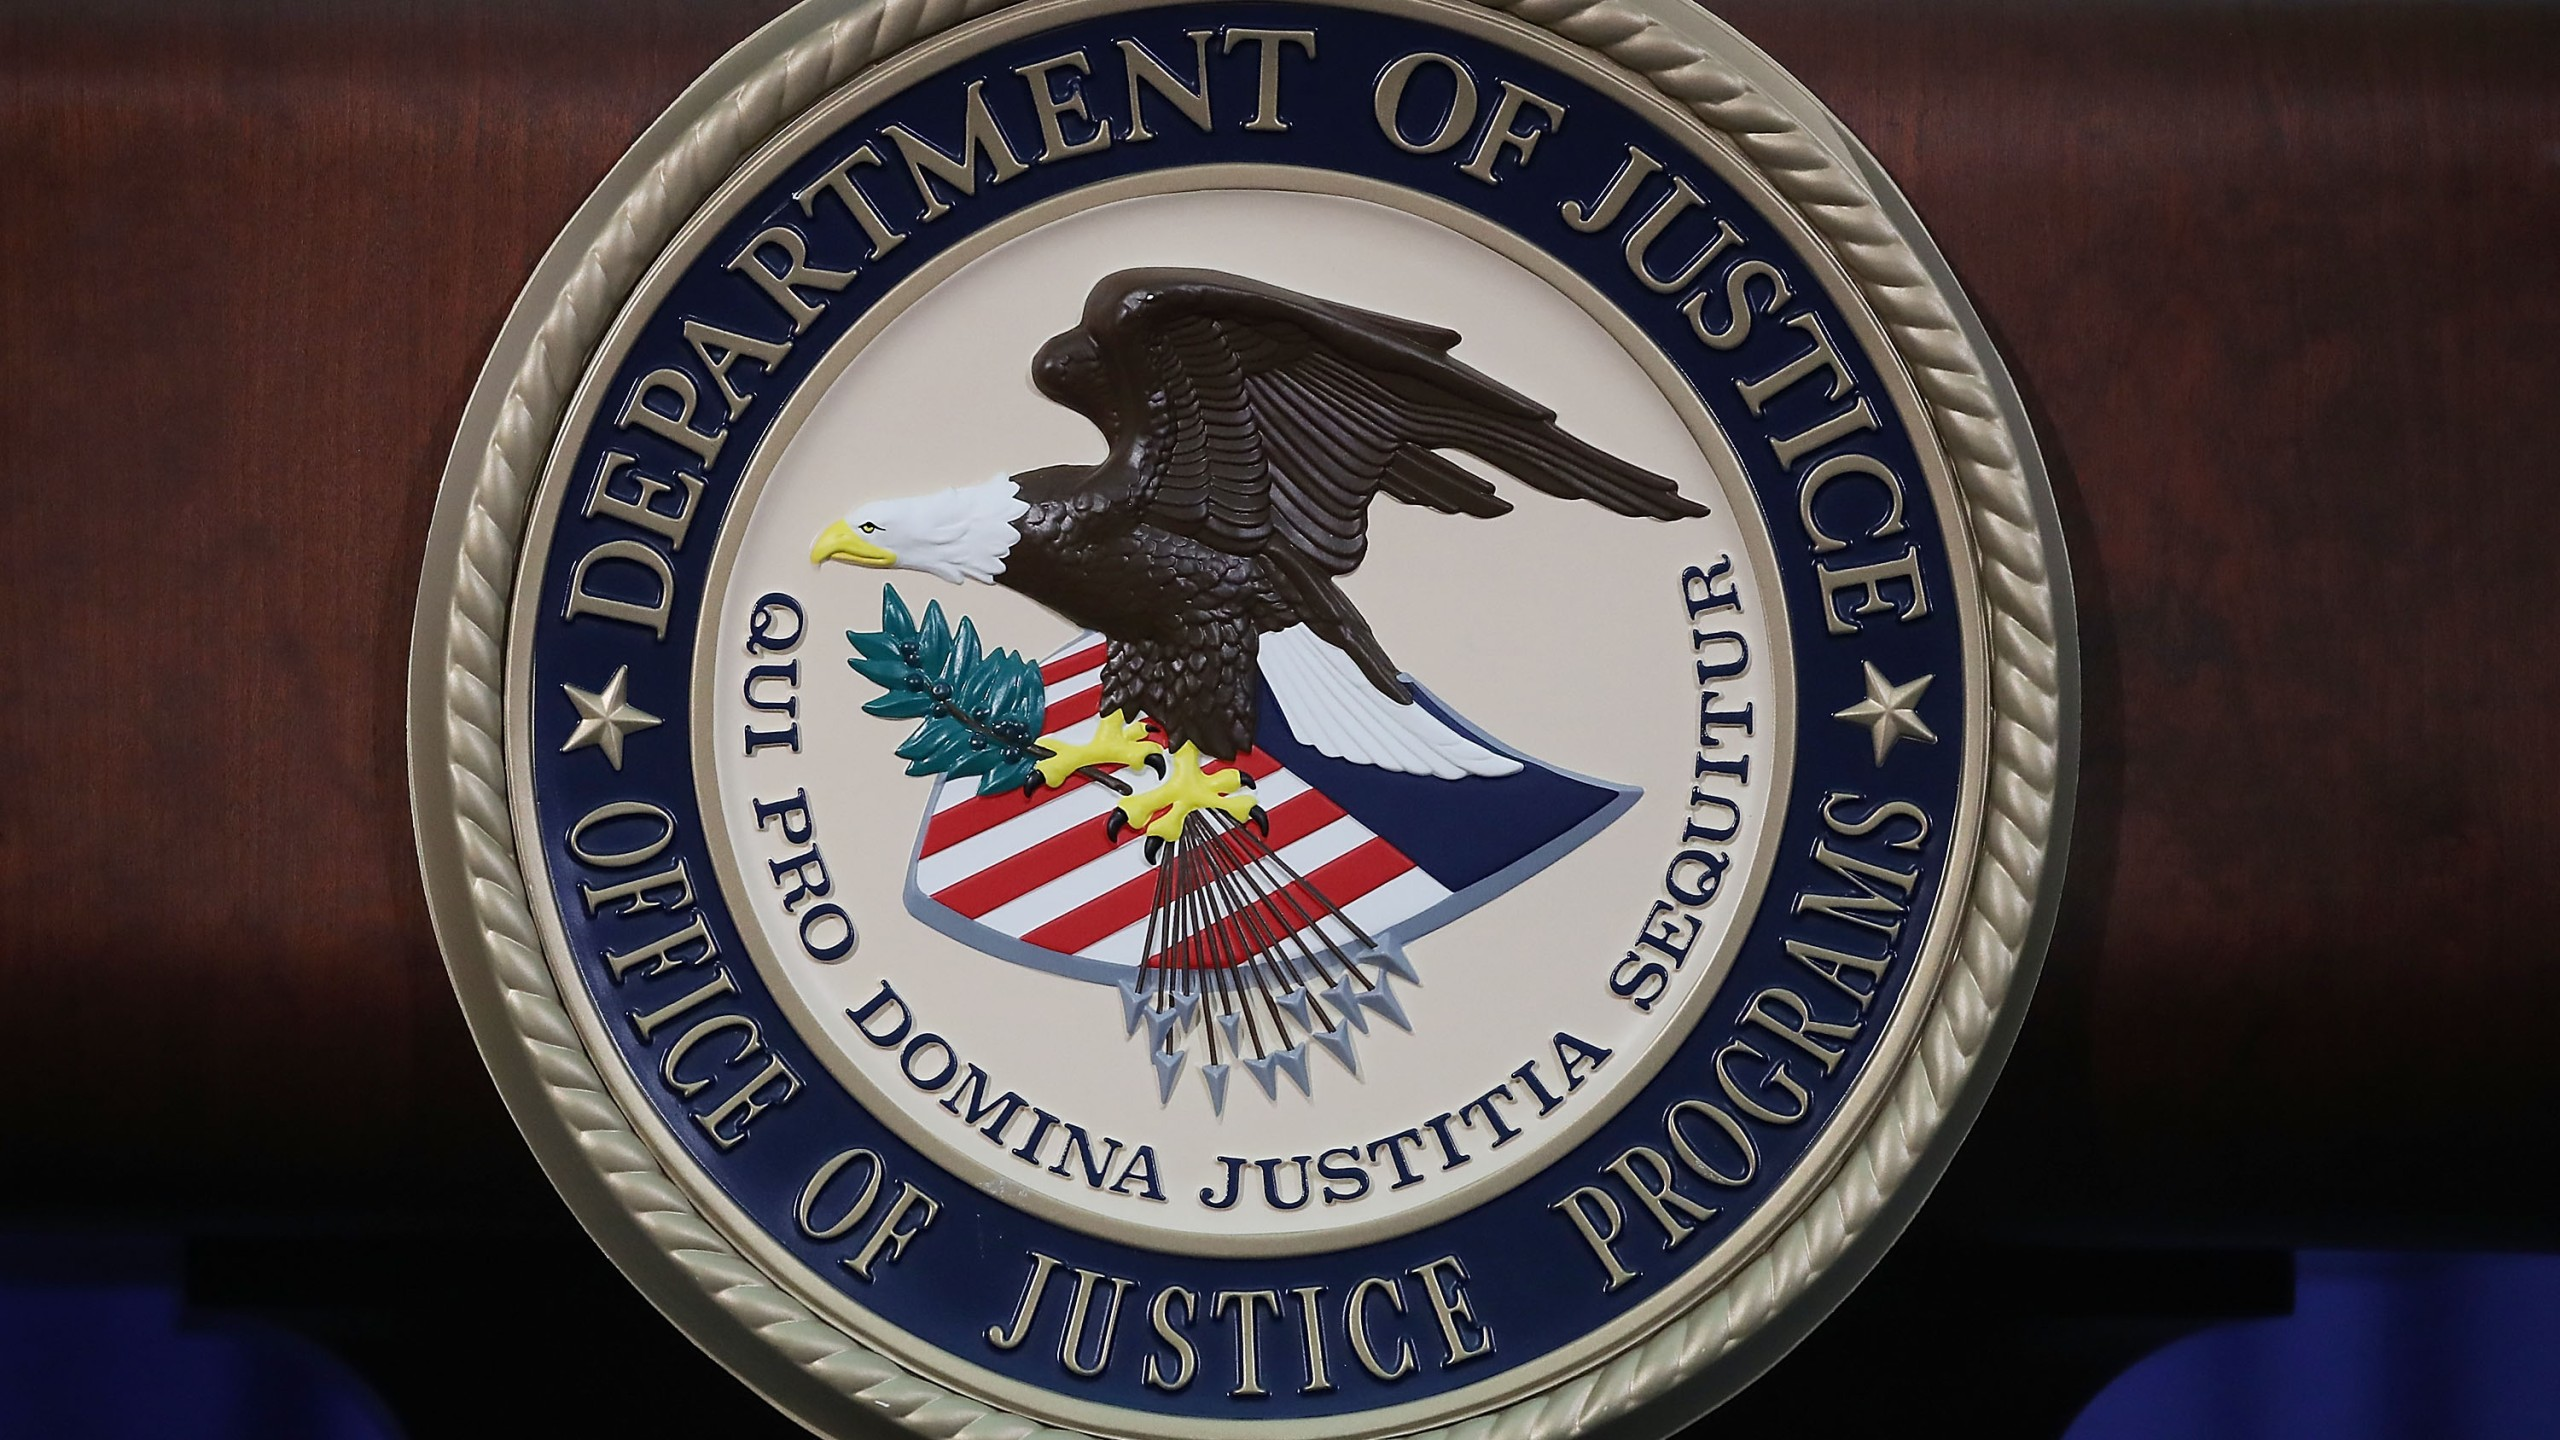 The Justice Department seal is seen on the lectern during a Hate Crimes Subcommittee summit on June 29, 2017 in Washington, D.C. (Credit: Mark Wilson/Getty Images)